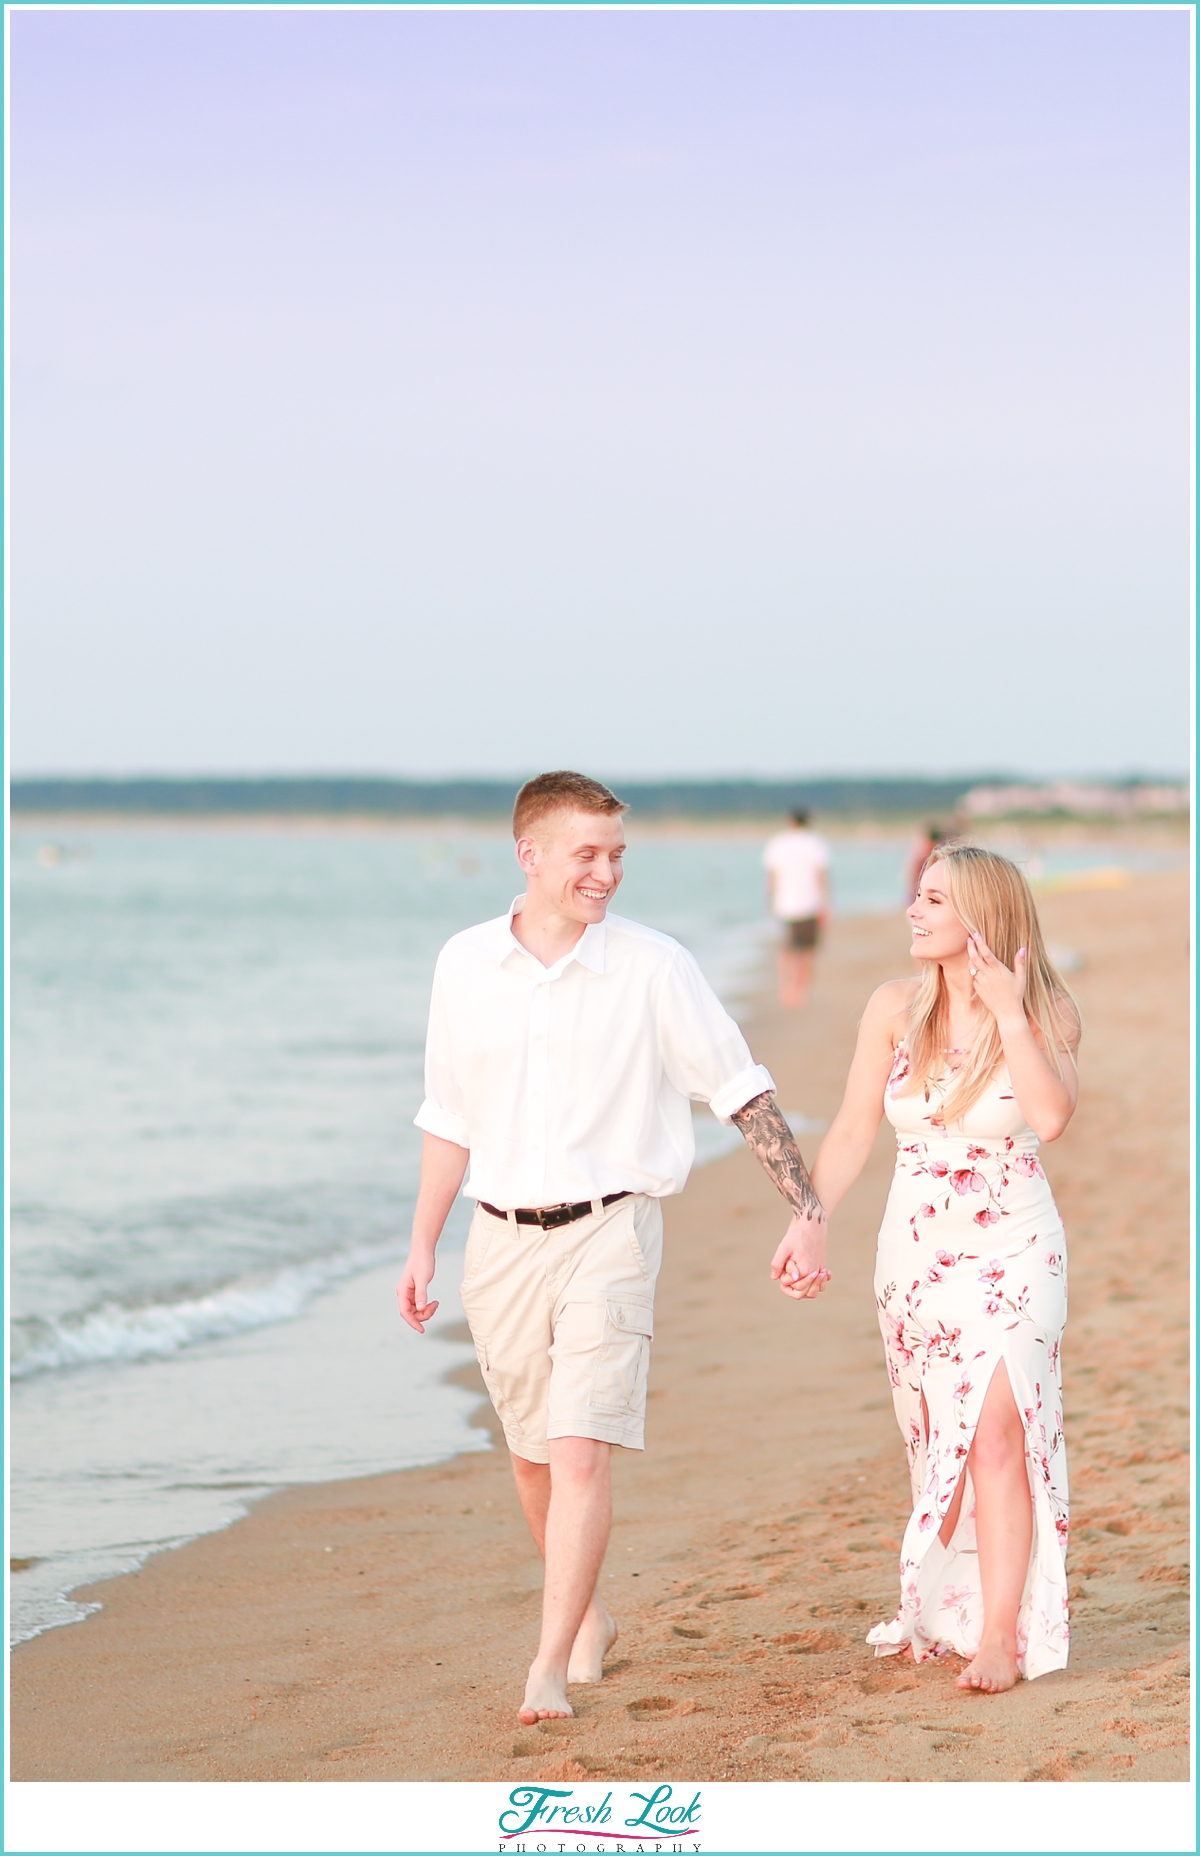 walking on the beach together